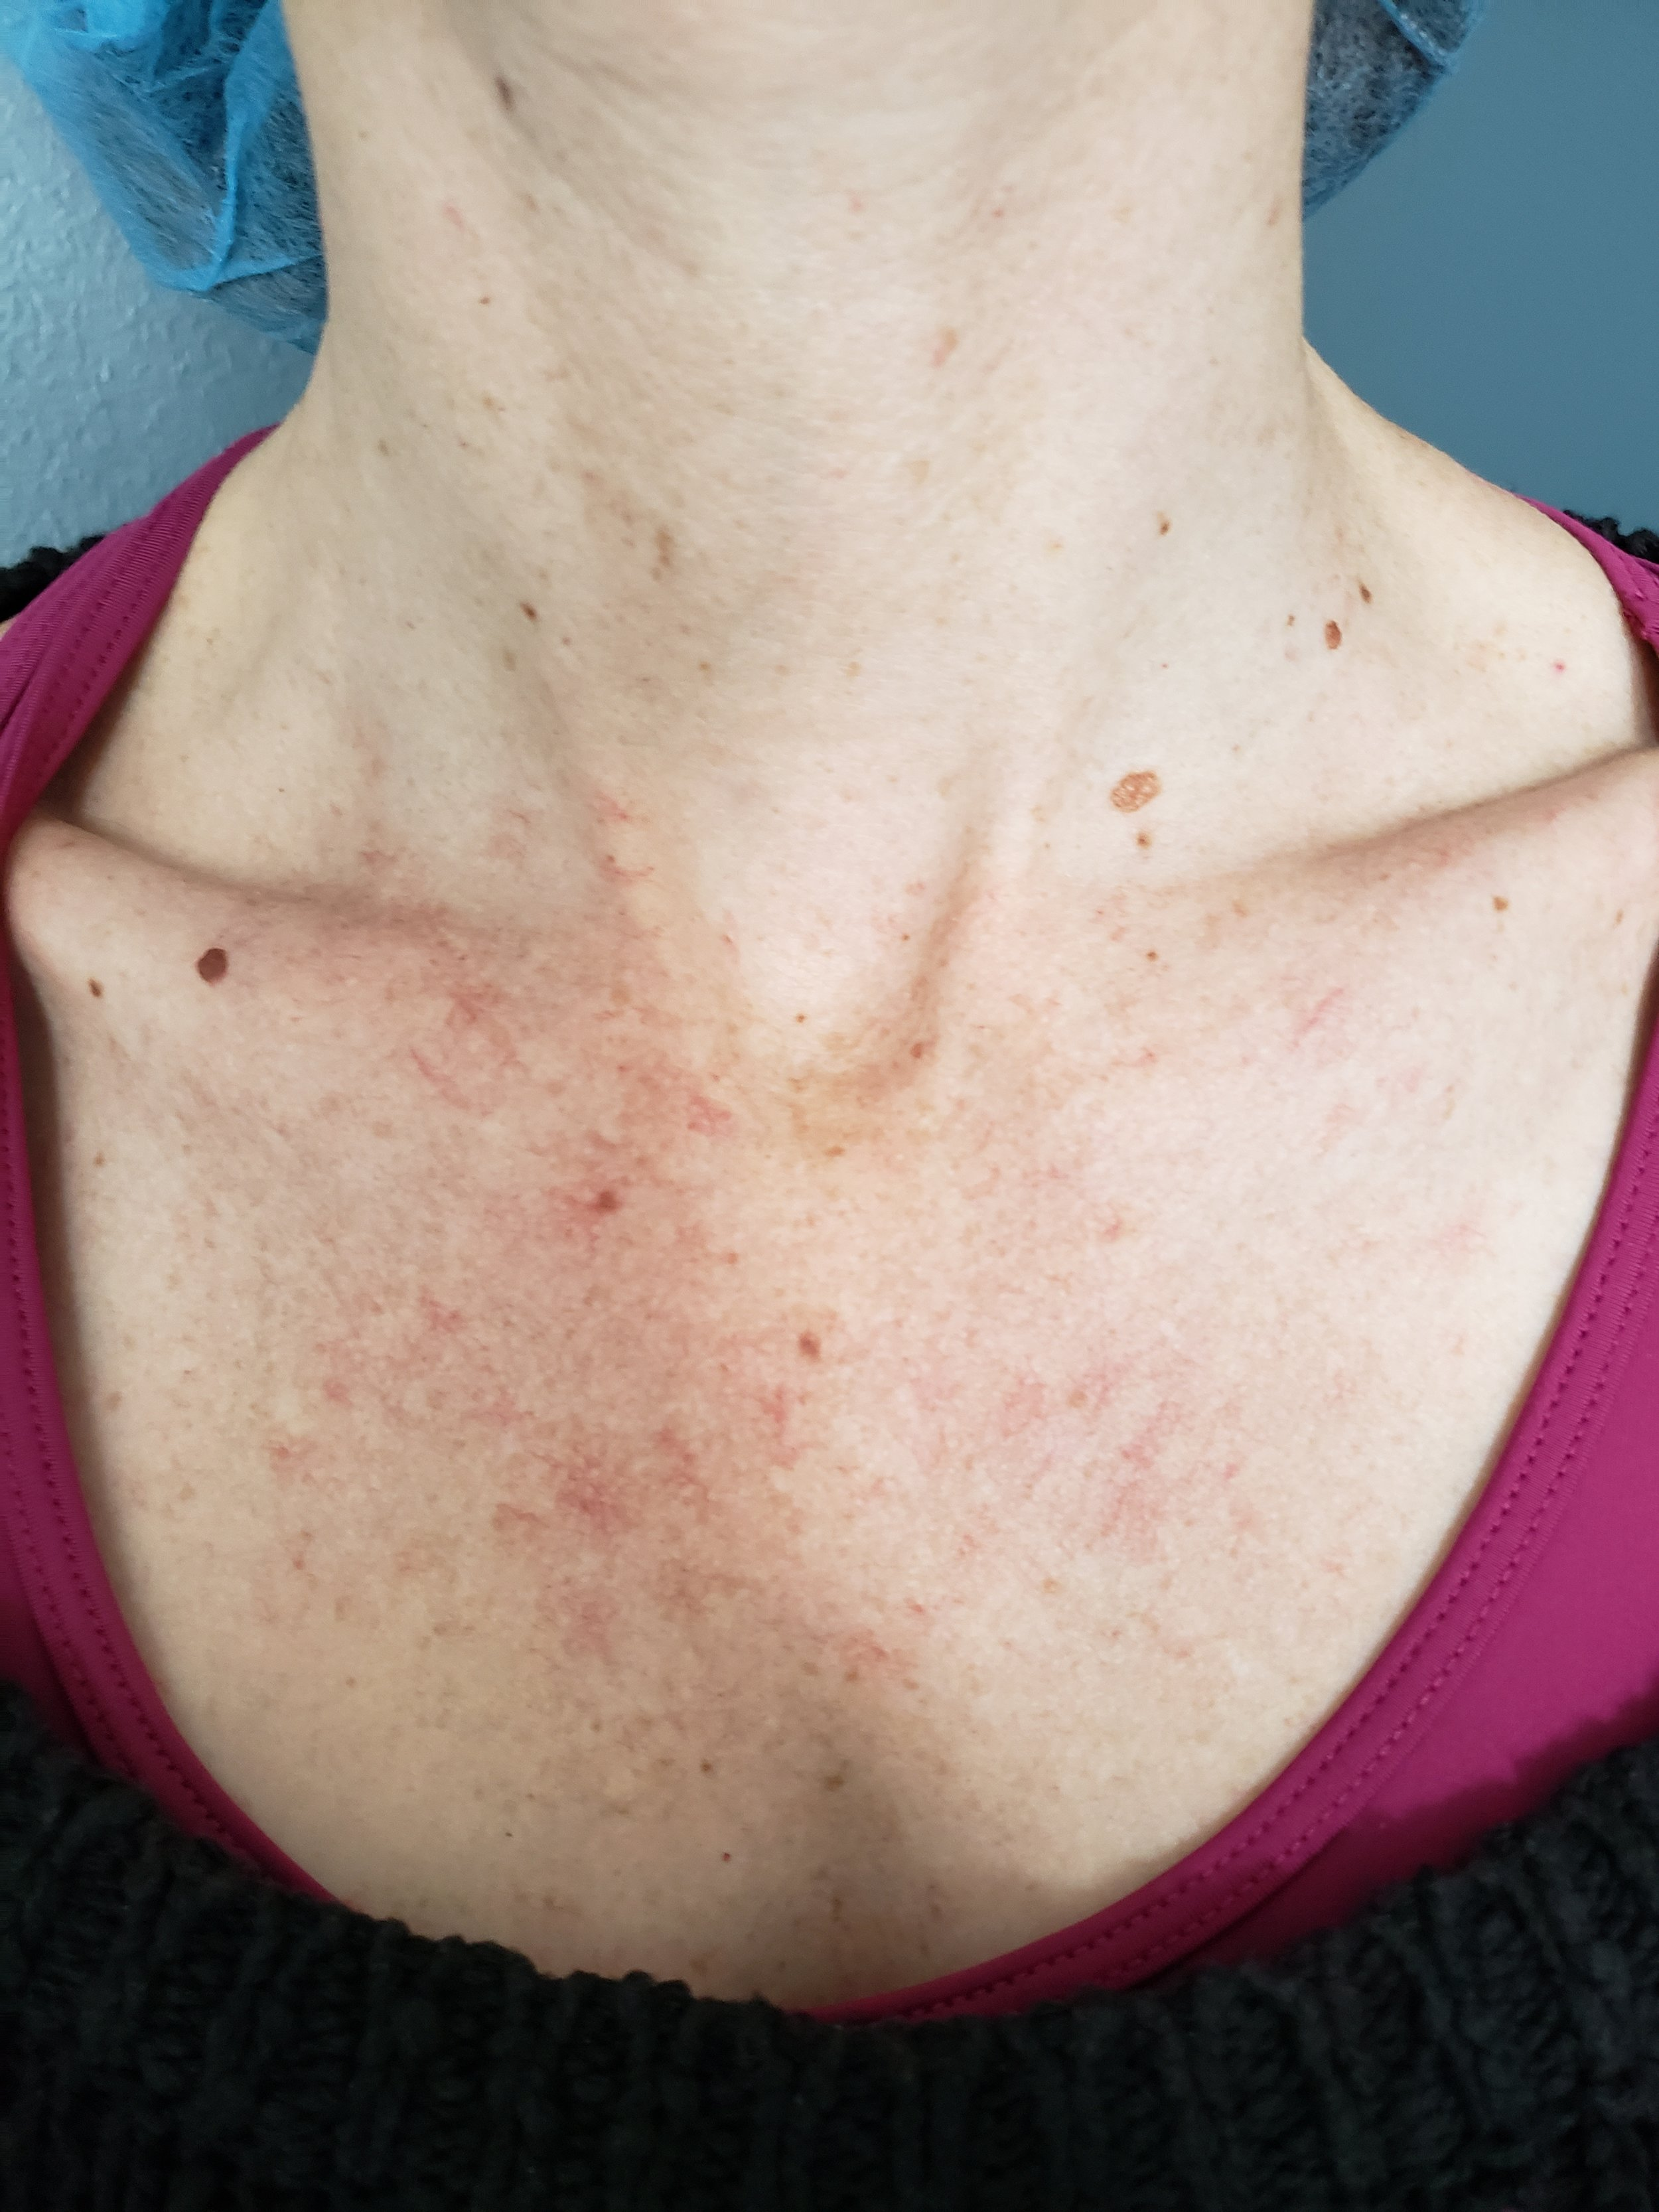 Decolletage before my first treatment. I've had this redness and blotchiness for as long as I can remember.